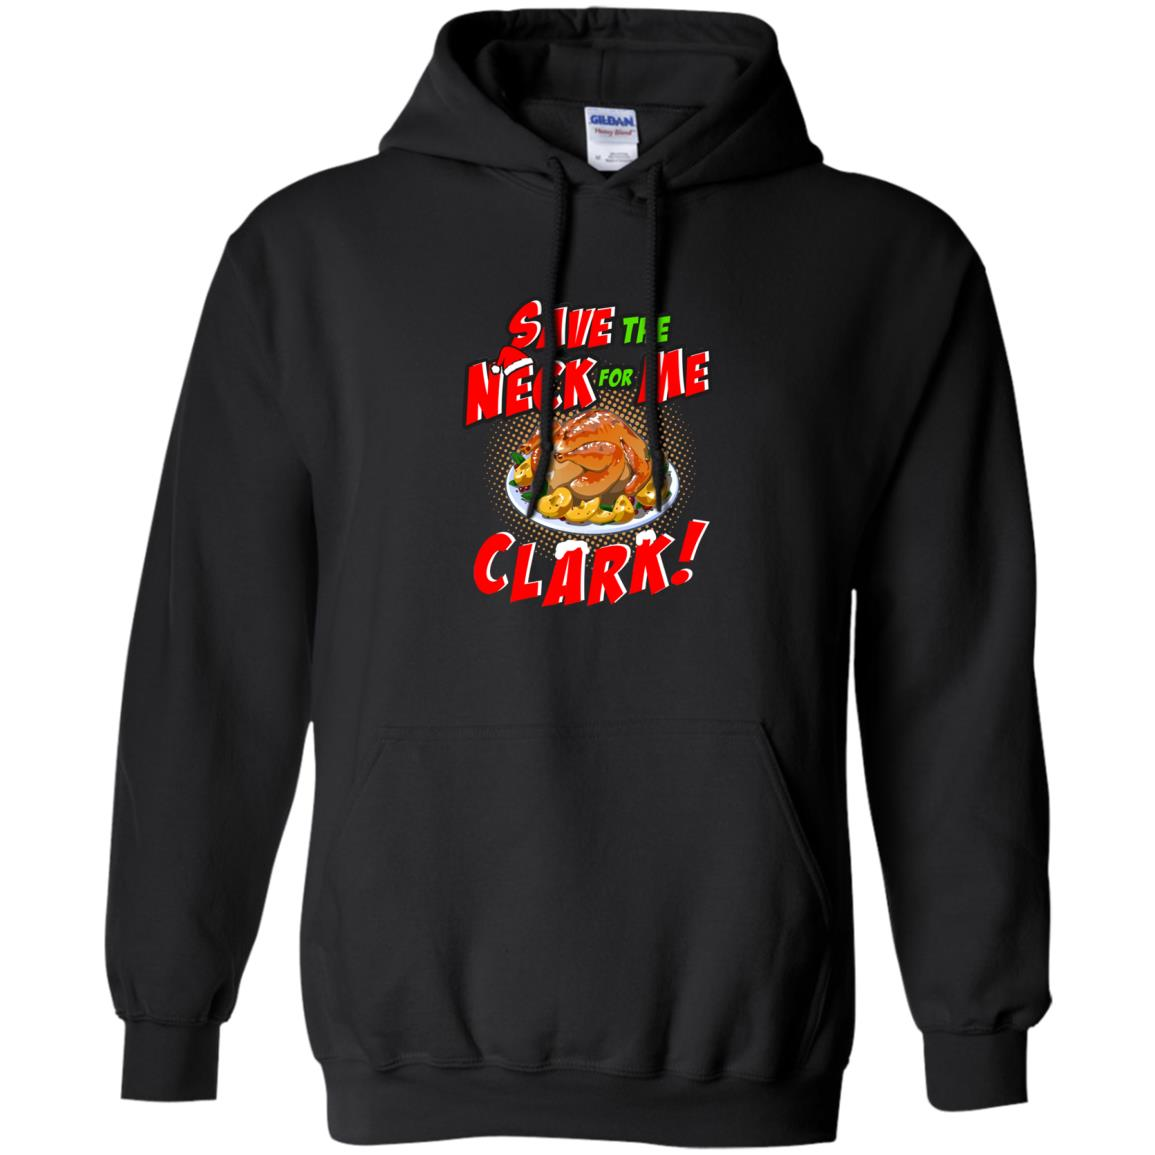 image 2354 - Clark Griswold: Save the neck for me Clark Christmas sweater, hoodie